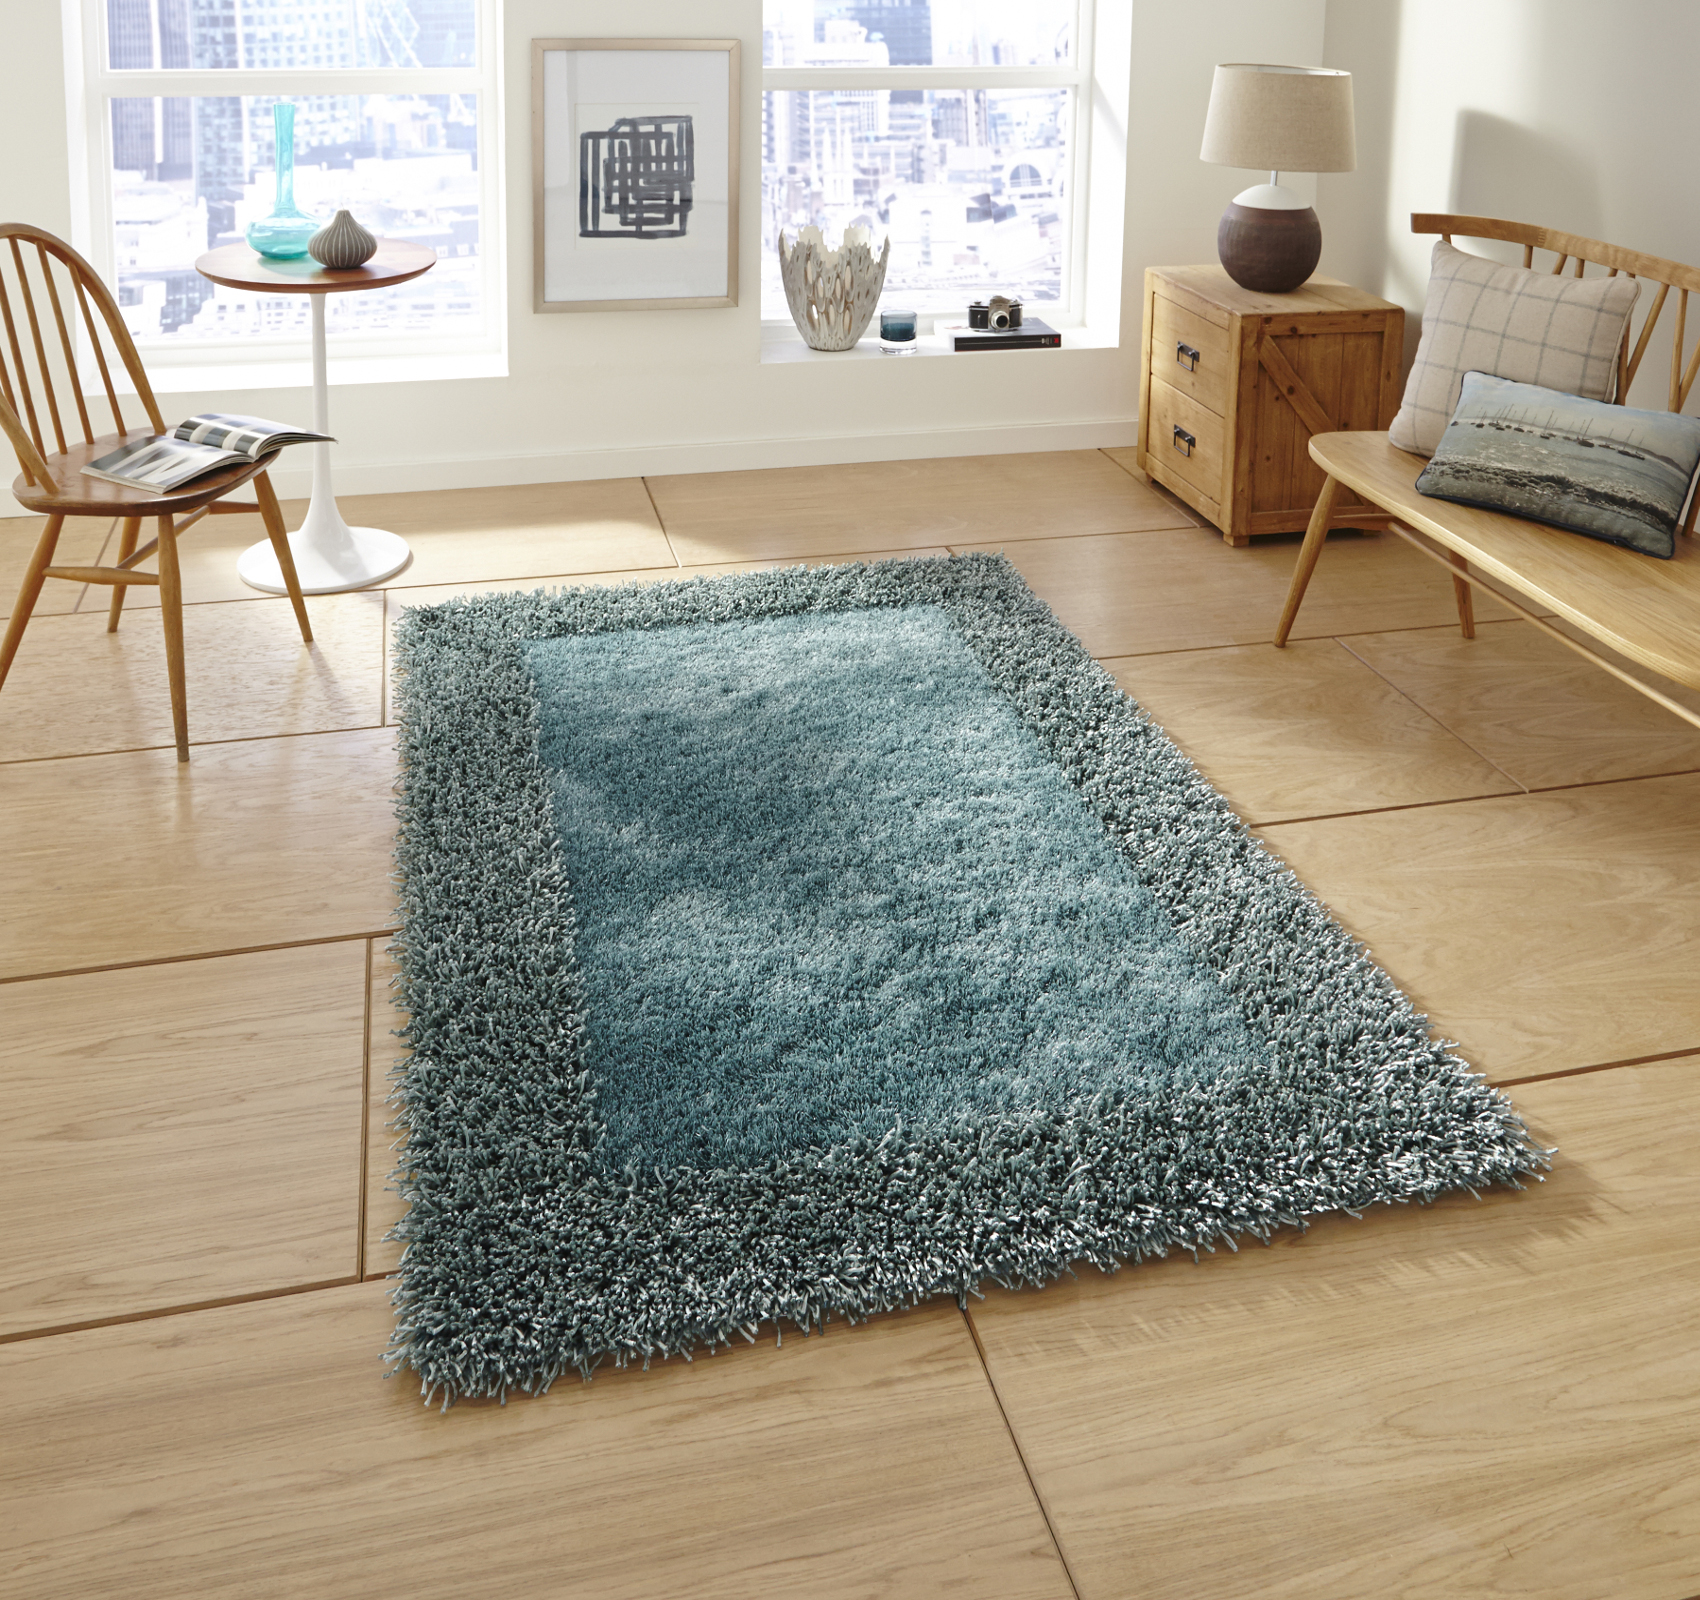 Sable Hand Tufted Thick Border Rug Large Floor